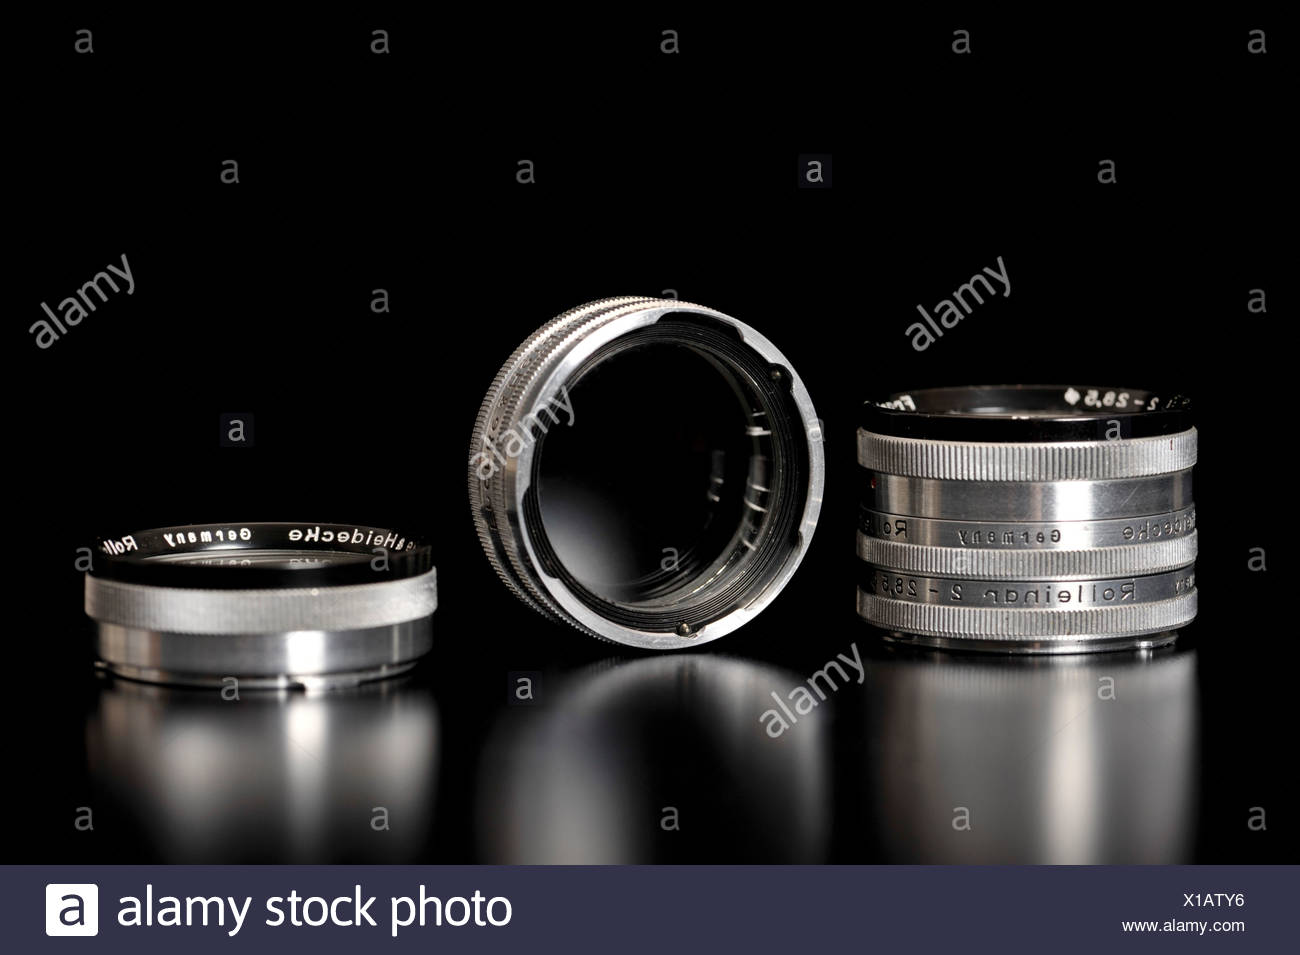 Old Rollei Rolleinar close-up lenses or filters - Stock Image